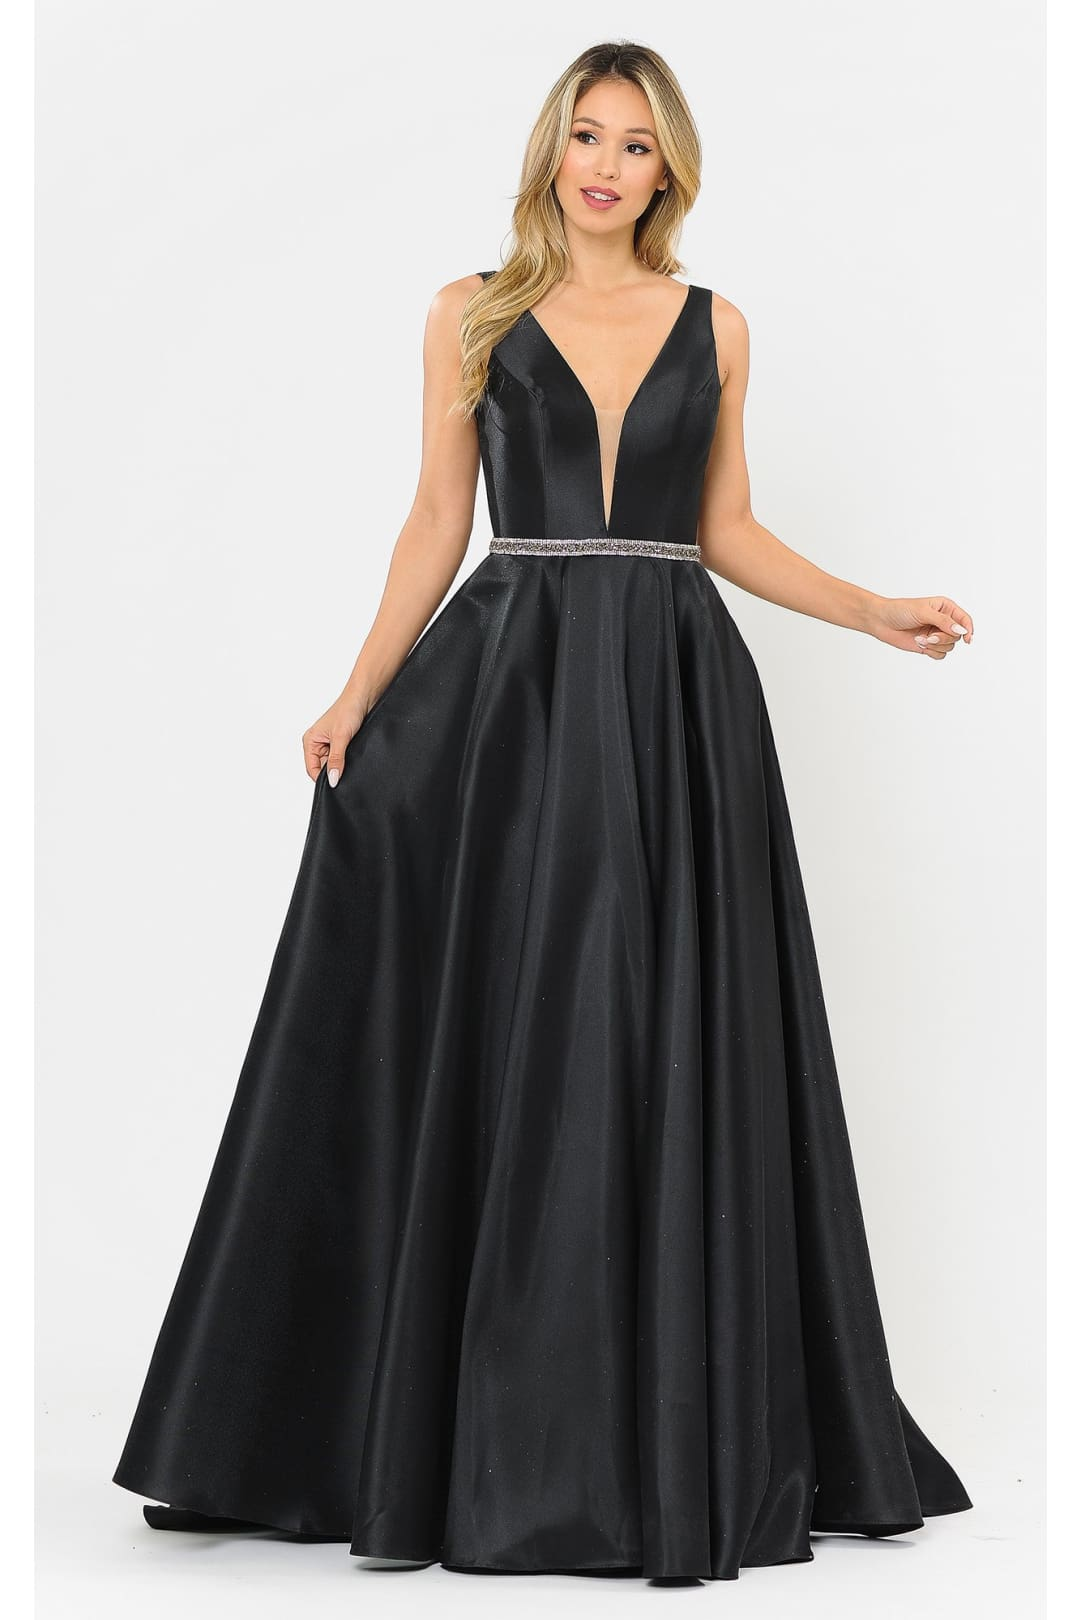 Red Carpet Formal Long Dress - BLACK / XS